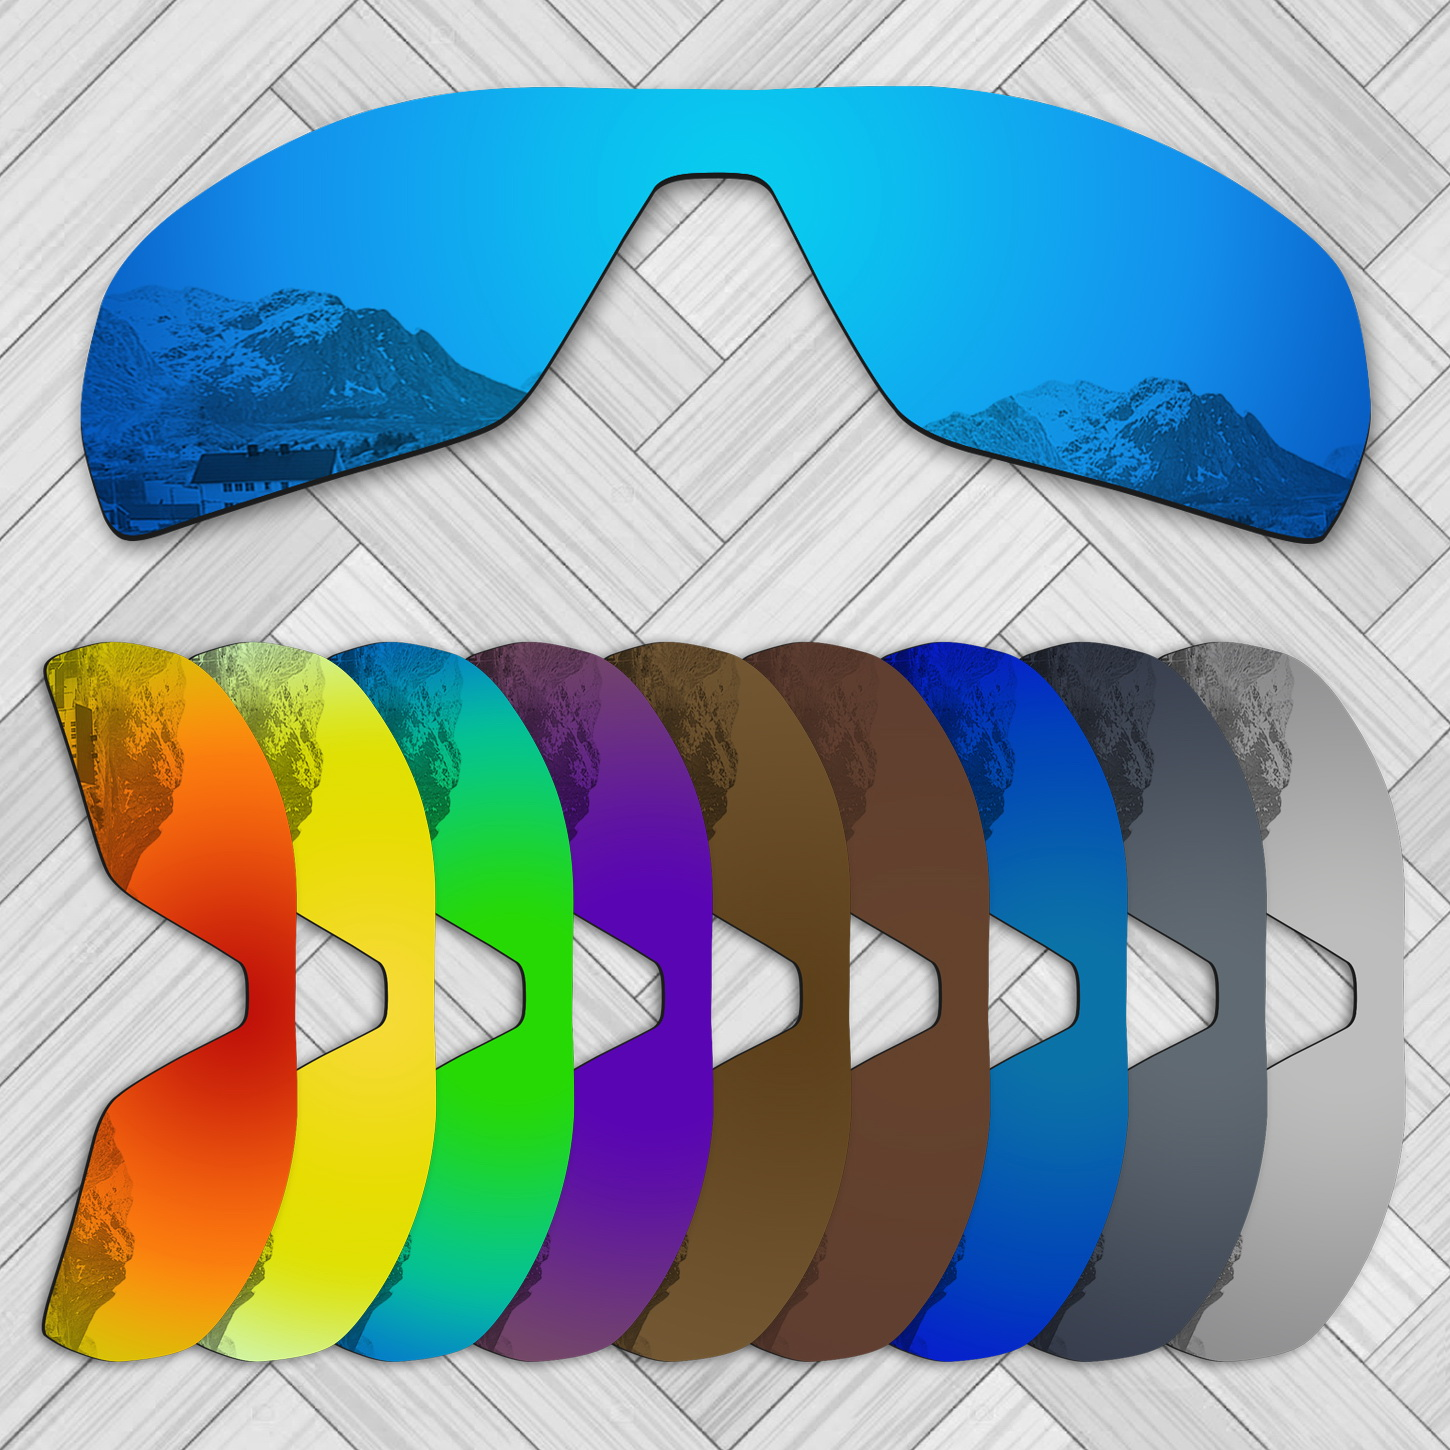 E.O.S 20+ Options Lens Replacement For OAKLEY Offshoot Sunglass